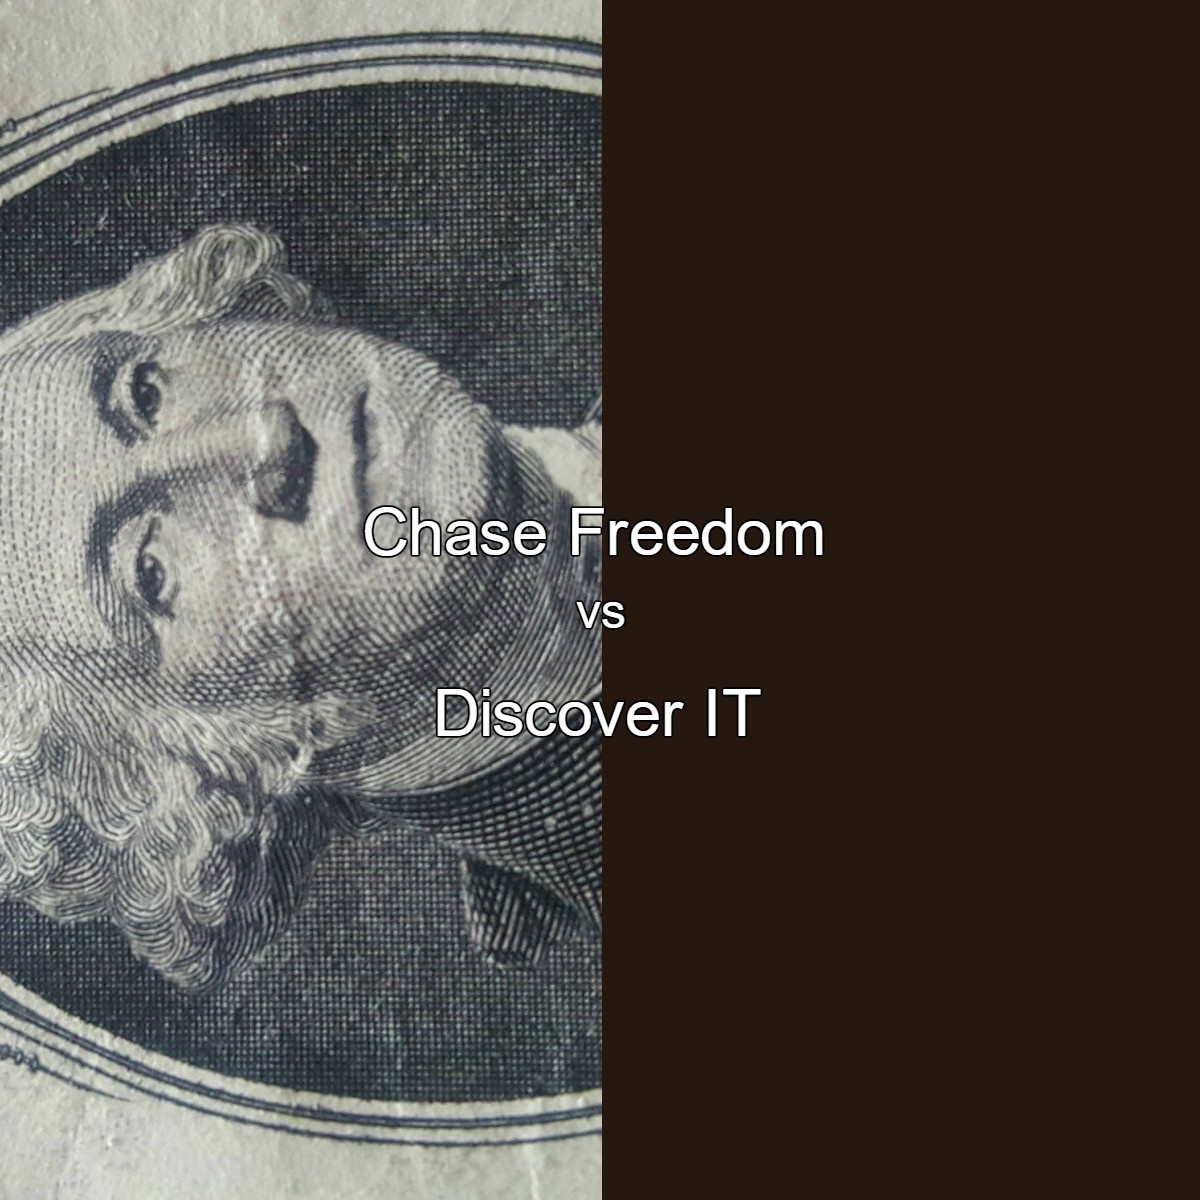 chase freedom vs Discover IT